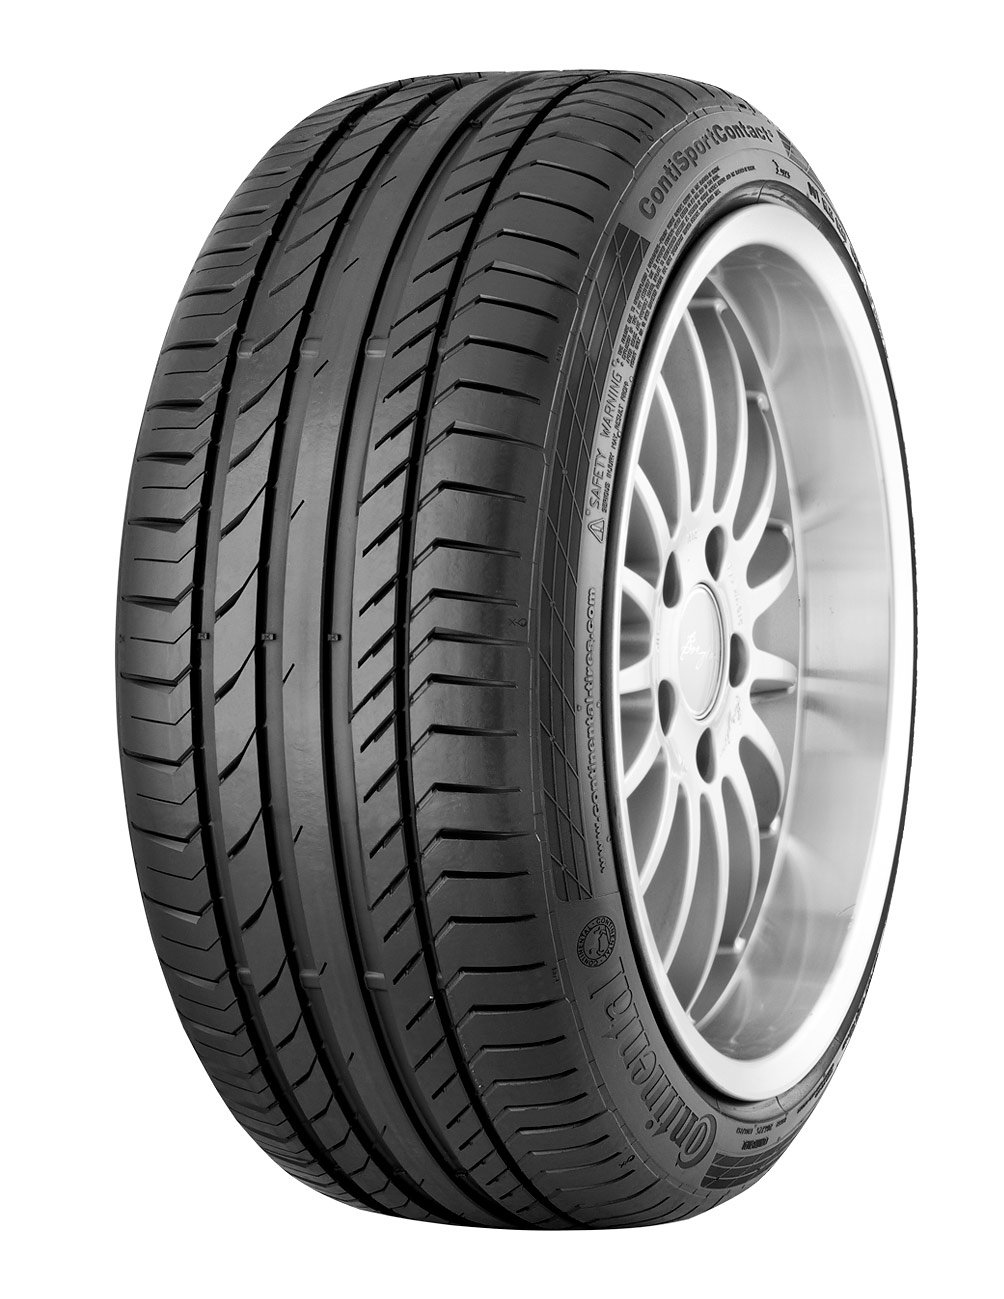 Continental ContiSportContact 5 SUV 255/55 R18 105W